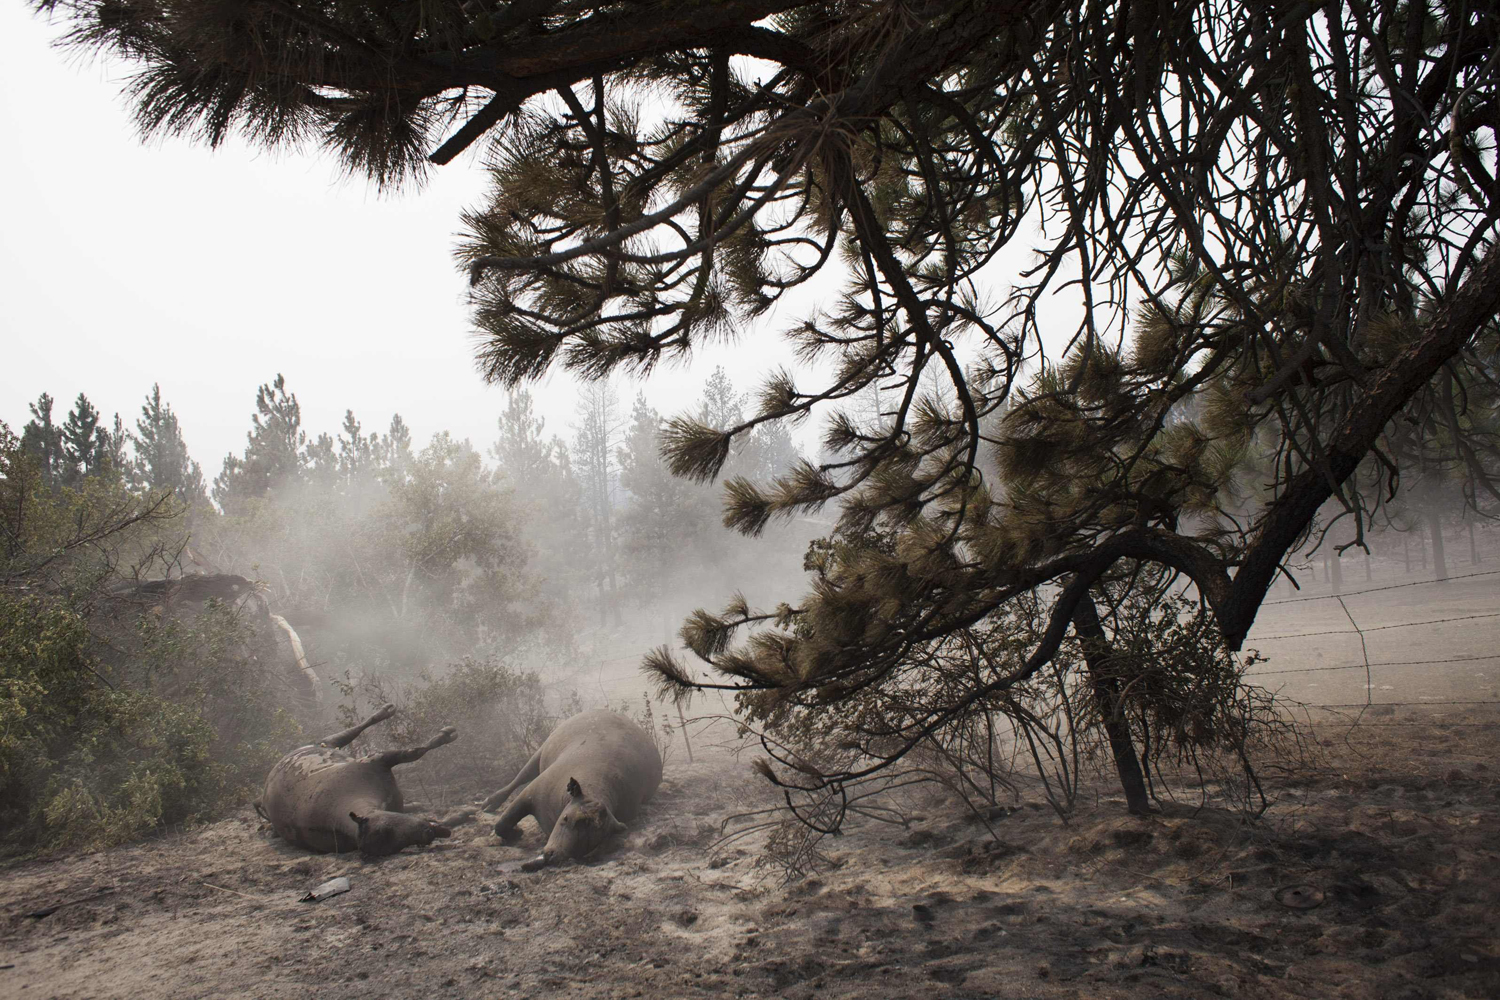 Jul. 20, 2014. Dust blows over deceased cattle, which fell victim to the Carlton Complex Fire, on ranch land near Malott, Washington.